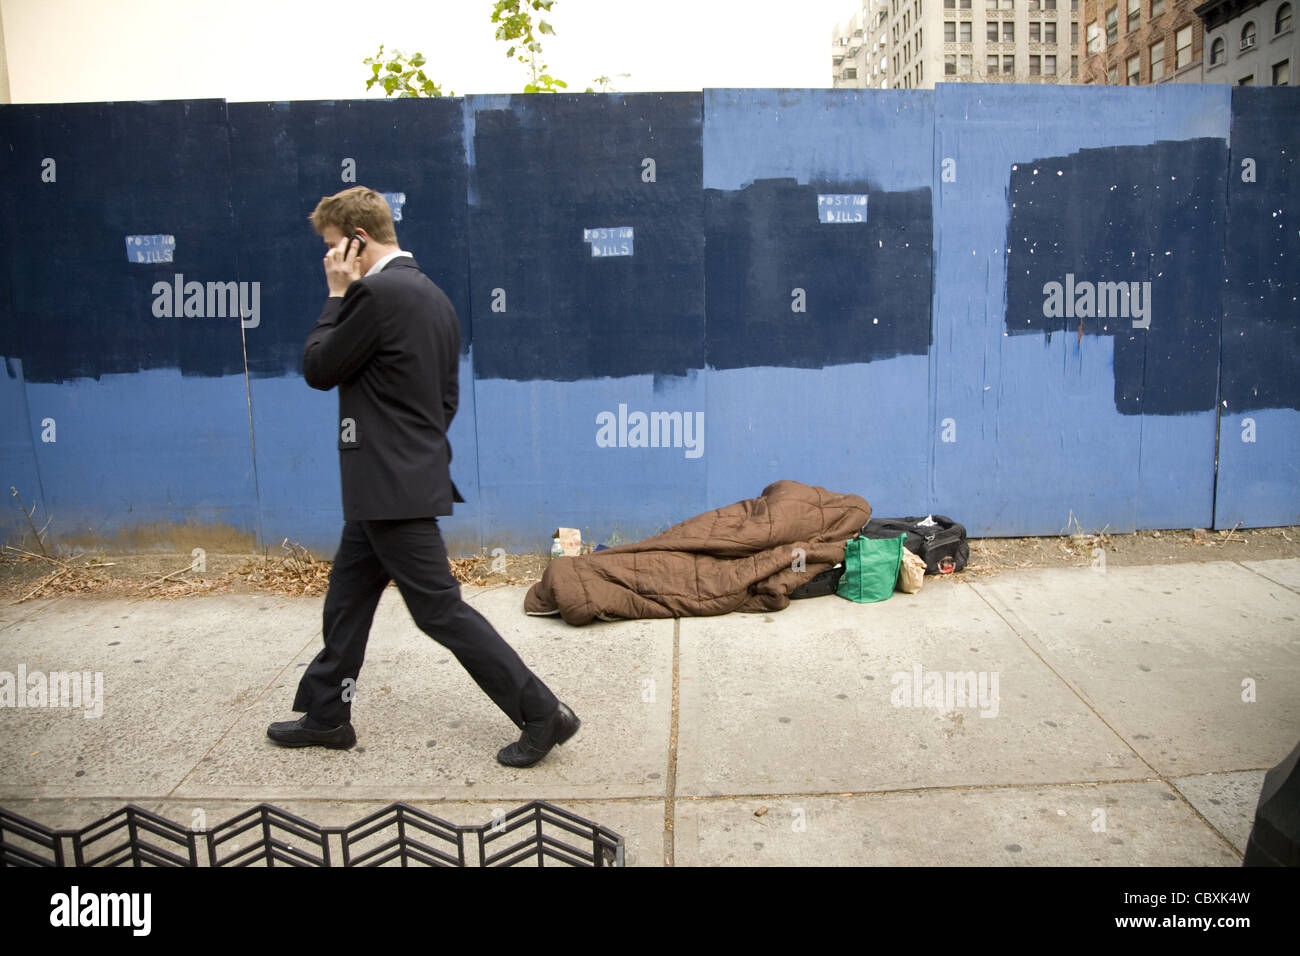 Homeless person asleep on the sidewalk in midtown Manhattan. - Stock Image